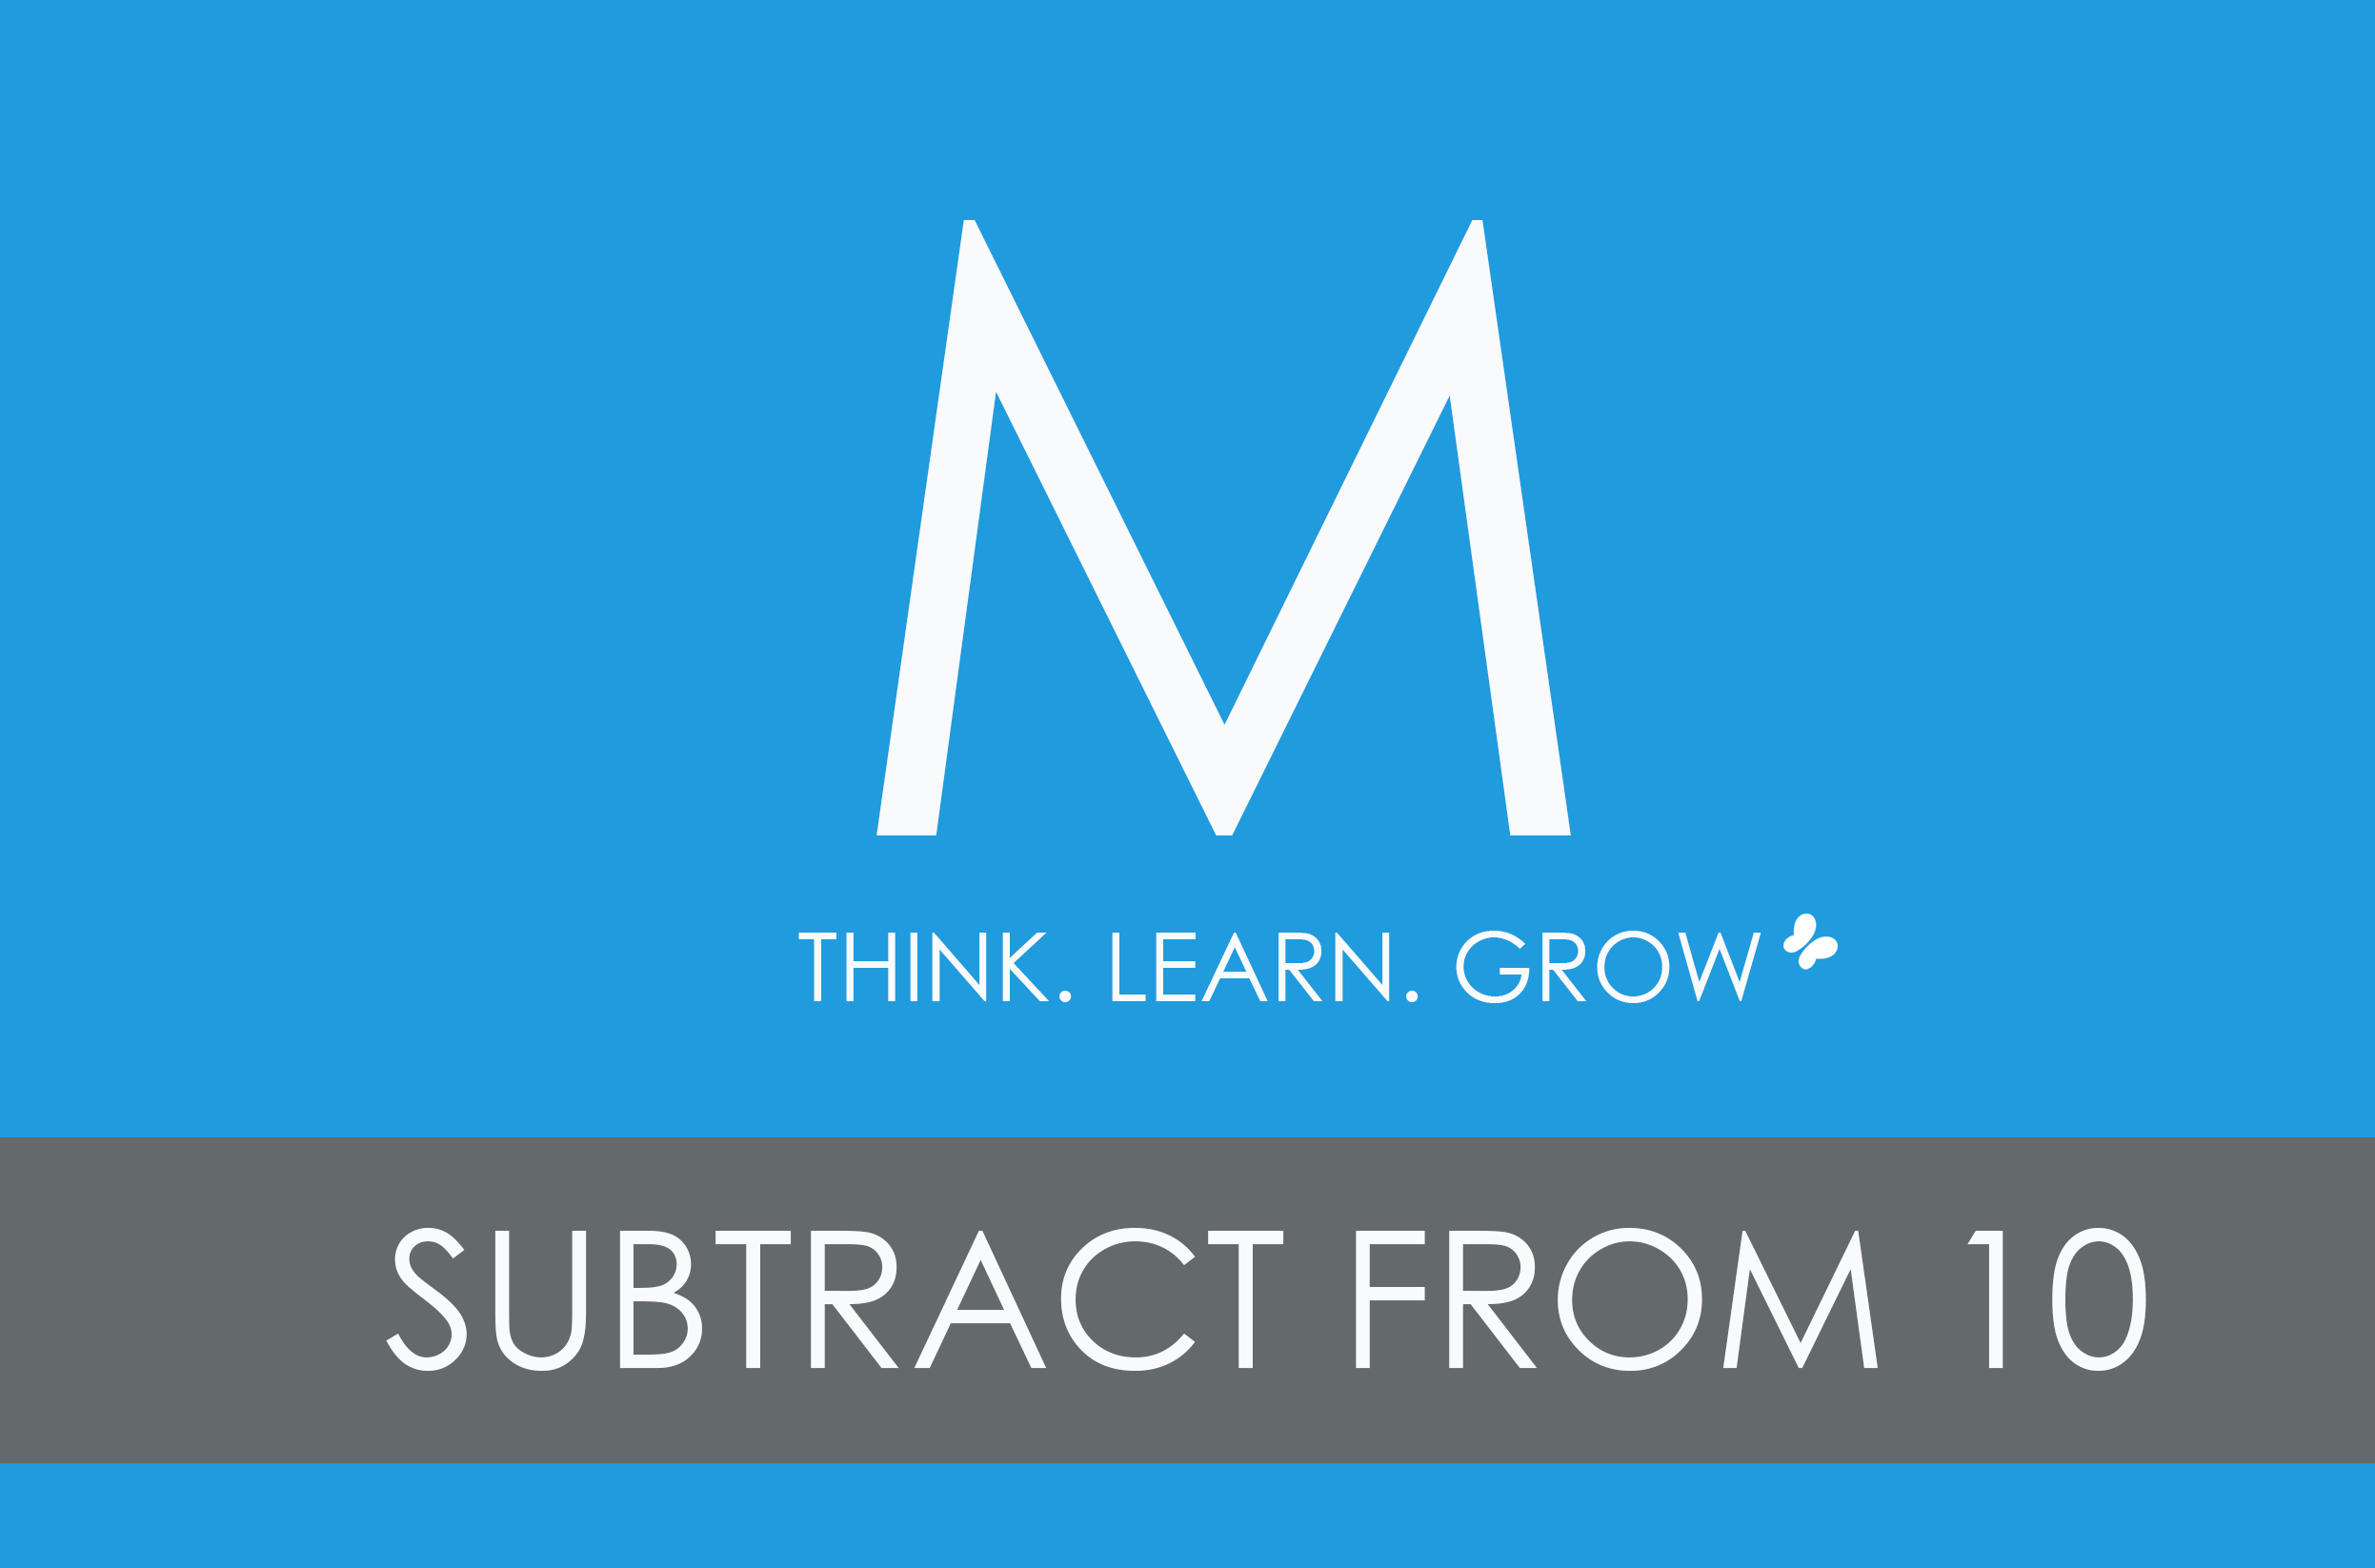 OA1314_Subtraction_Subtract_From_10